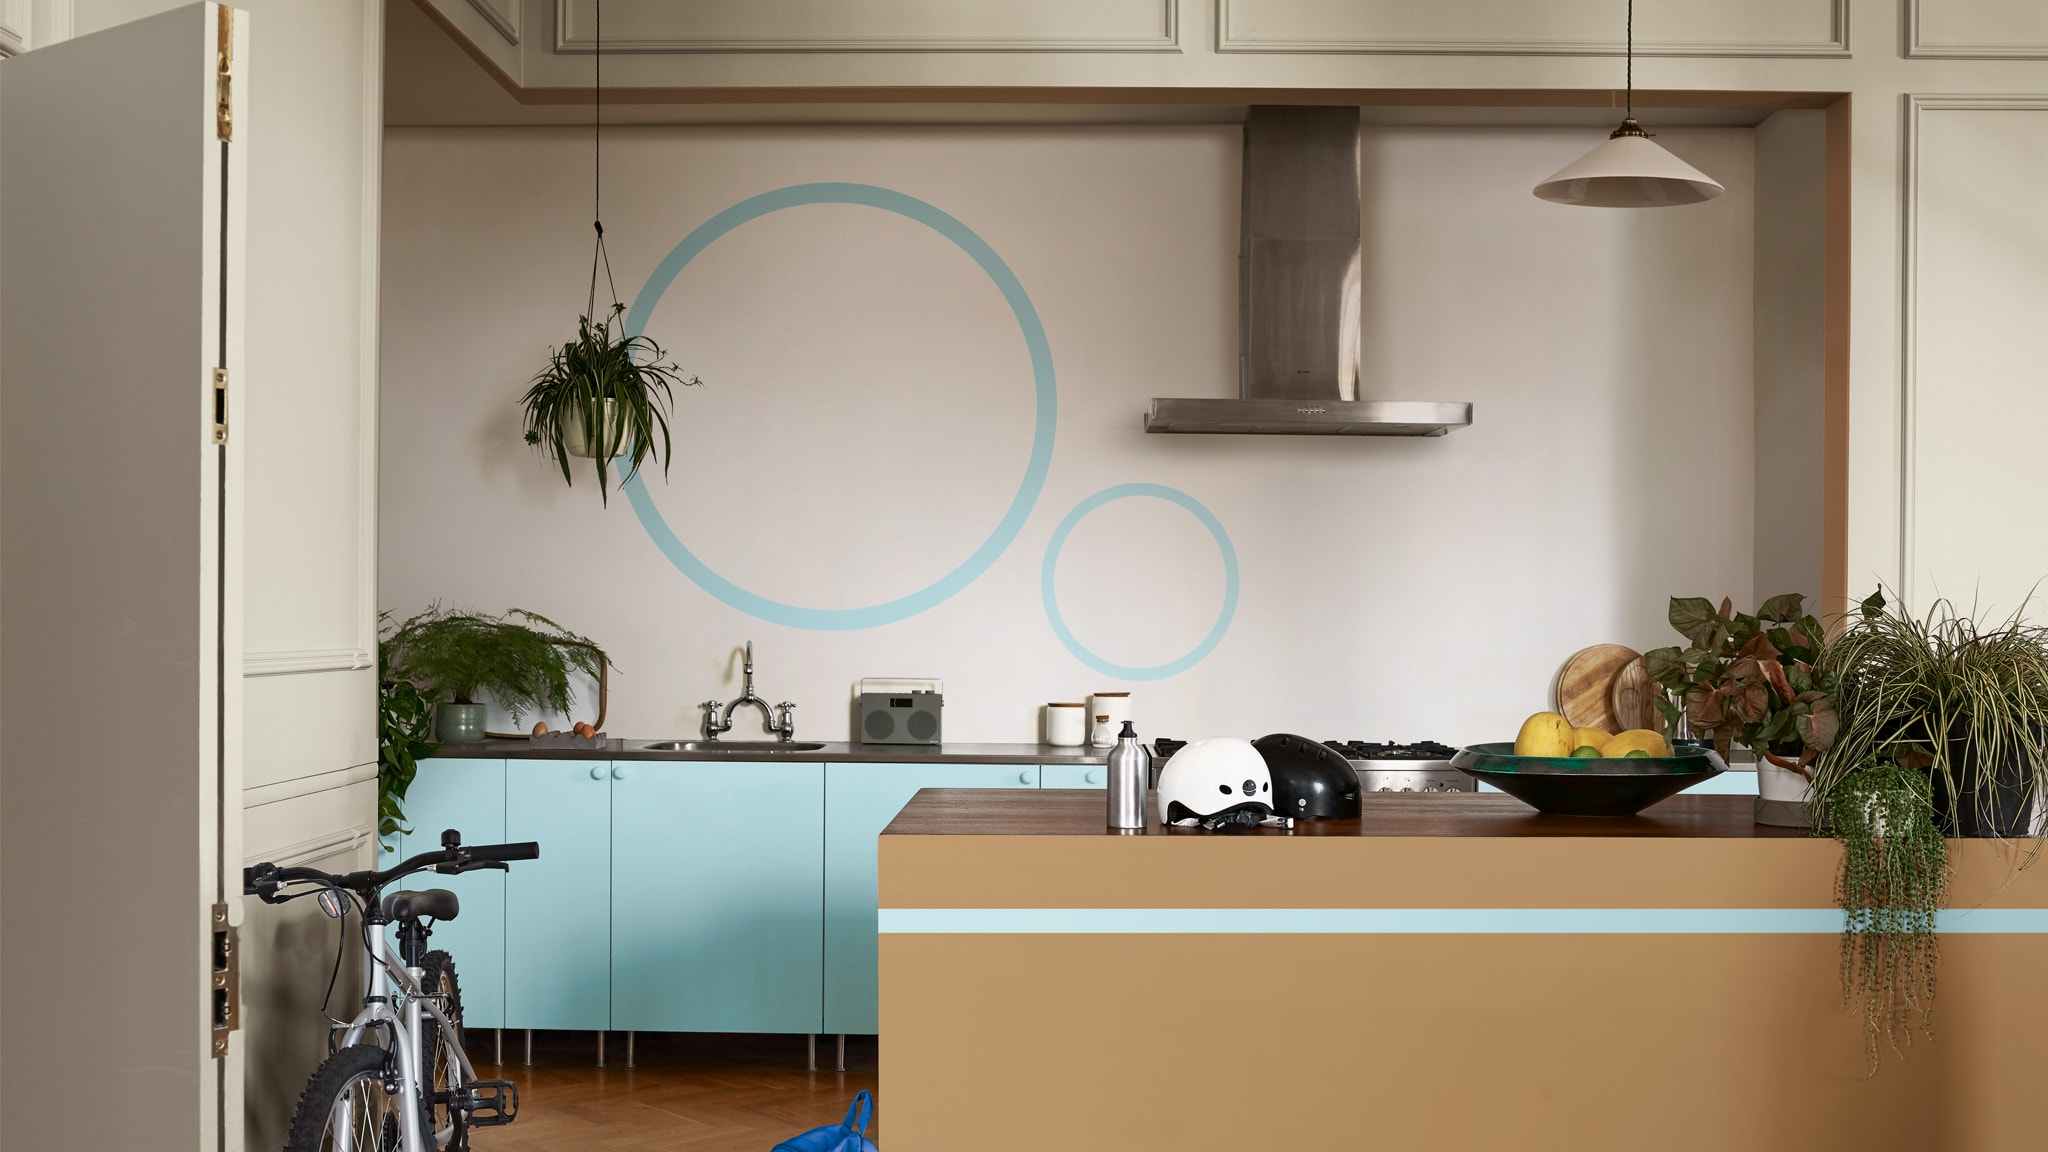 Deco-Paints-Colour-Futures-Colour-of-the-Year-2019-A-place-to-act-Kitchen-Inspiration-29